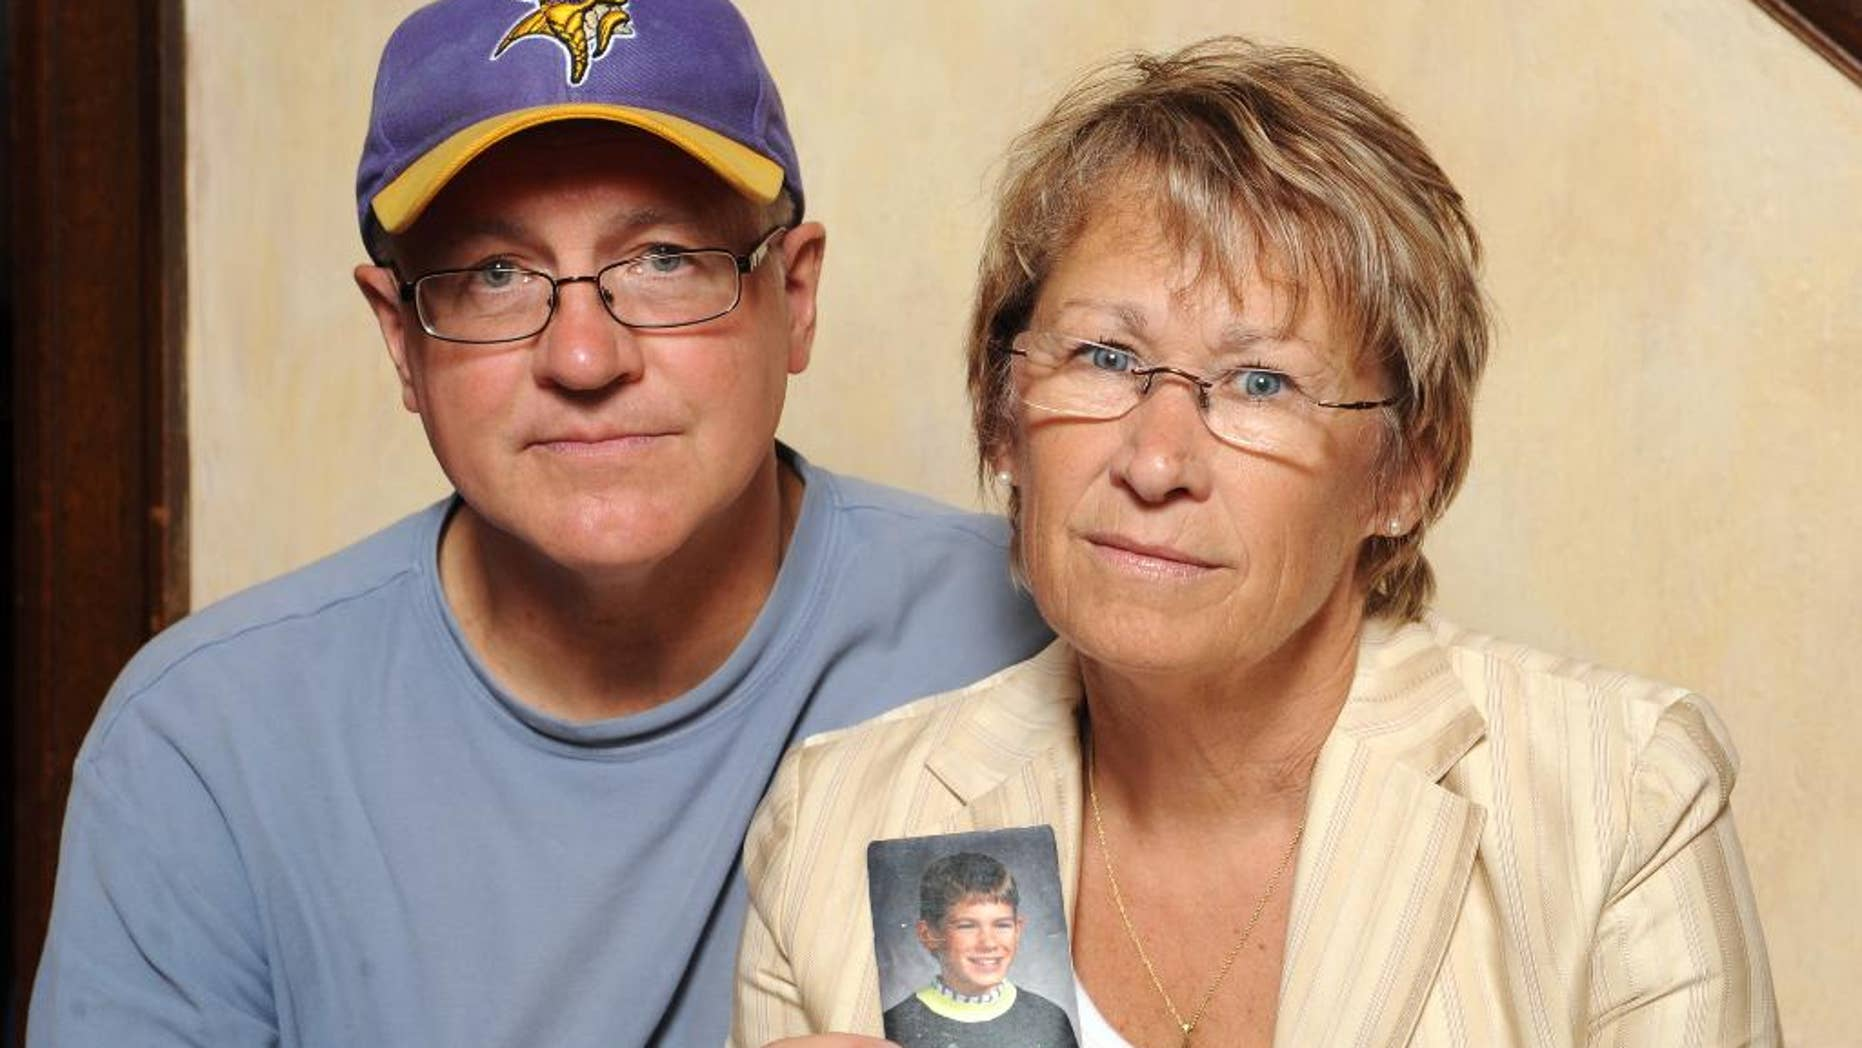 Patty and Jerry Wetterling with a photo of their son, Jacob.